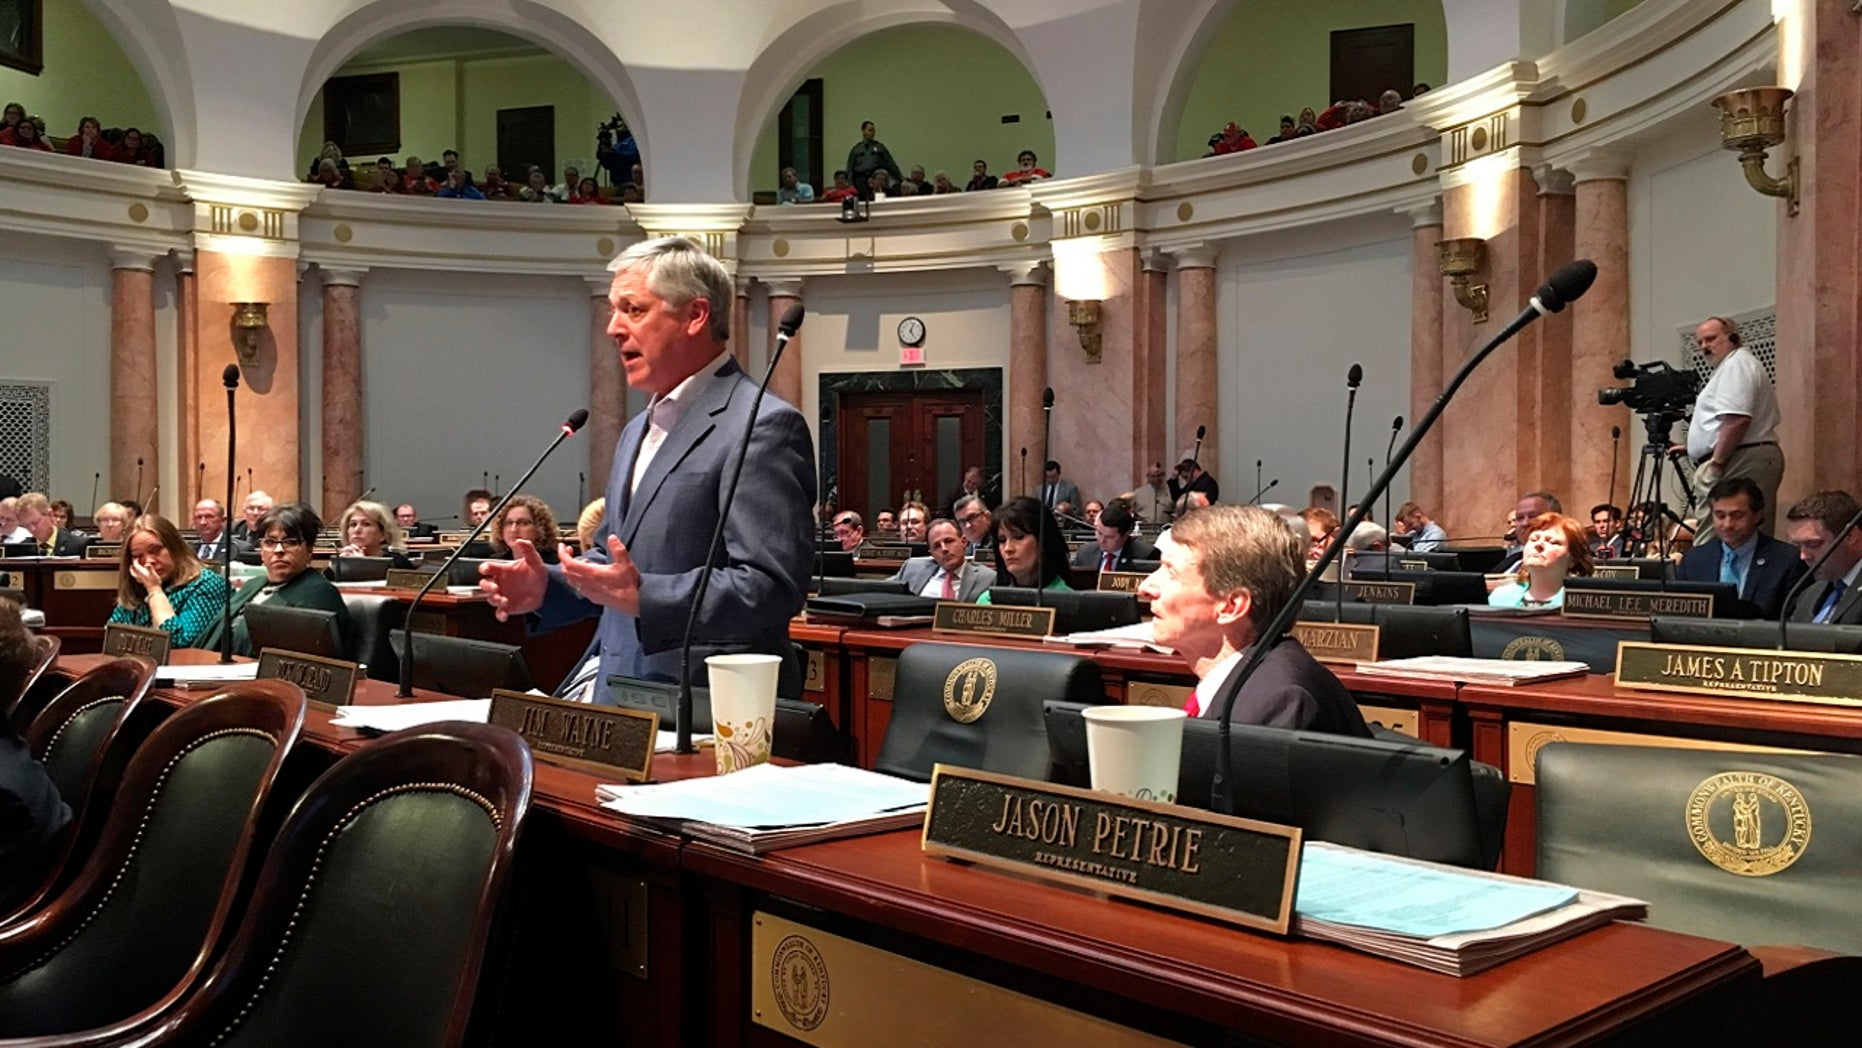 Democratic state Rep. Rick Rand speaks against a bill to change the state's troubled pension system, March 29, 2018 in Frankfort, Ky.